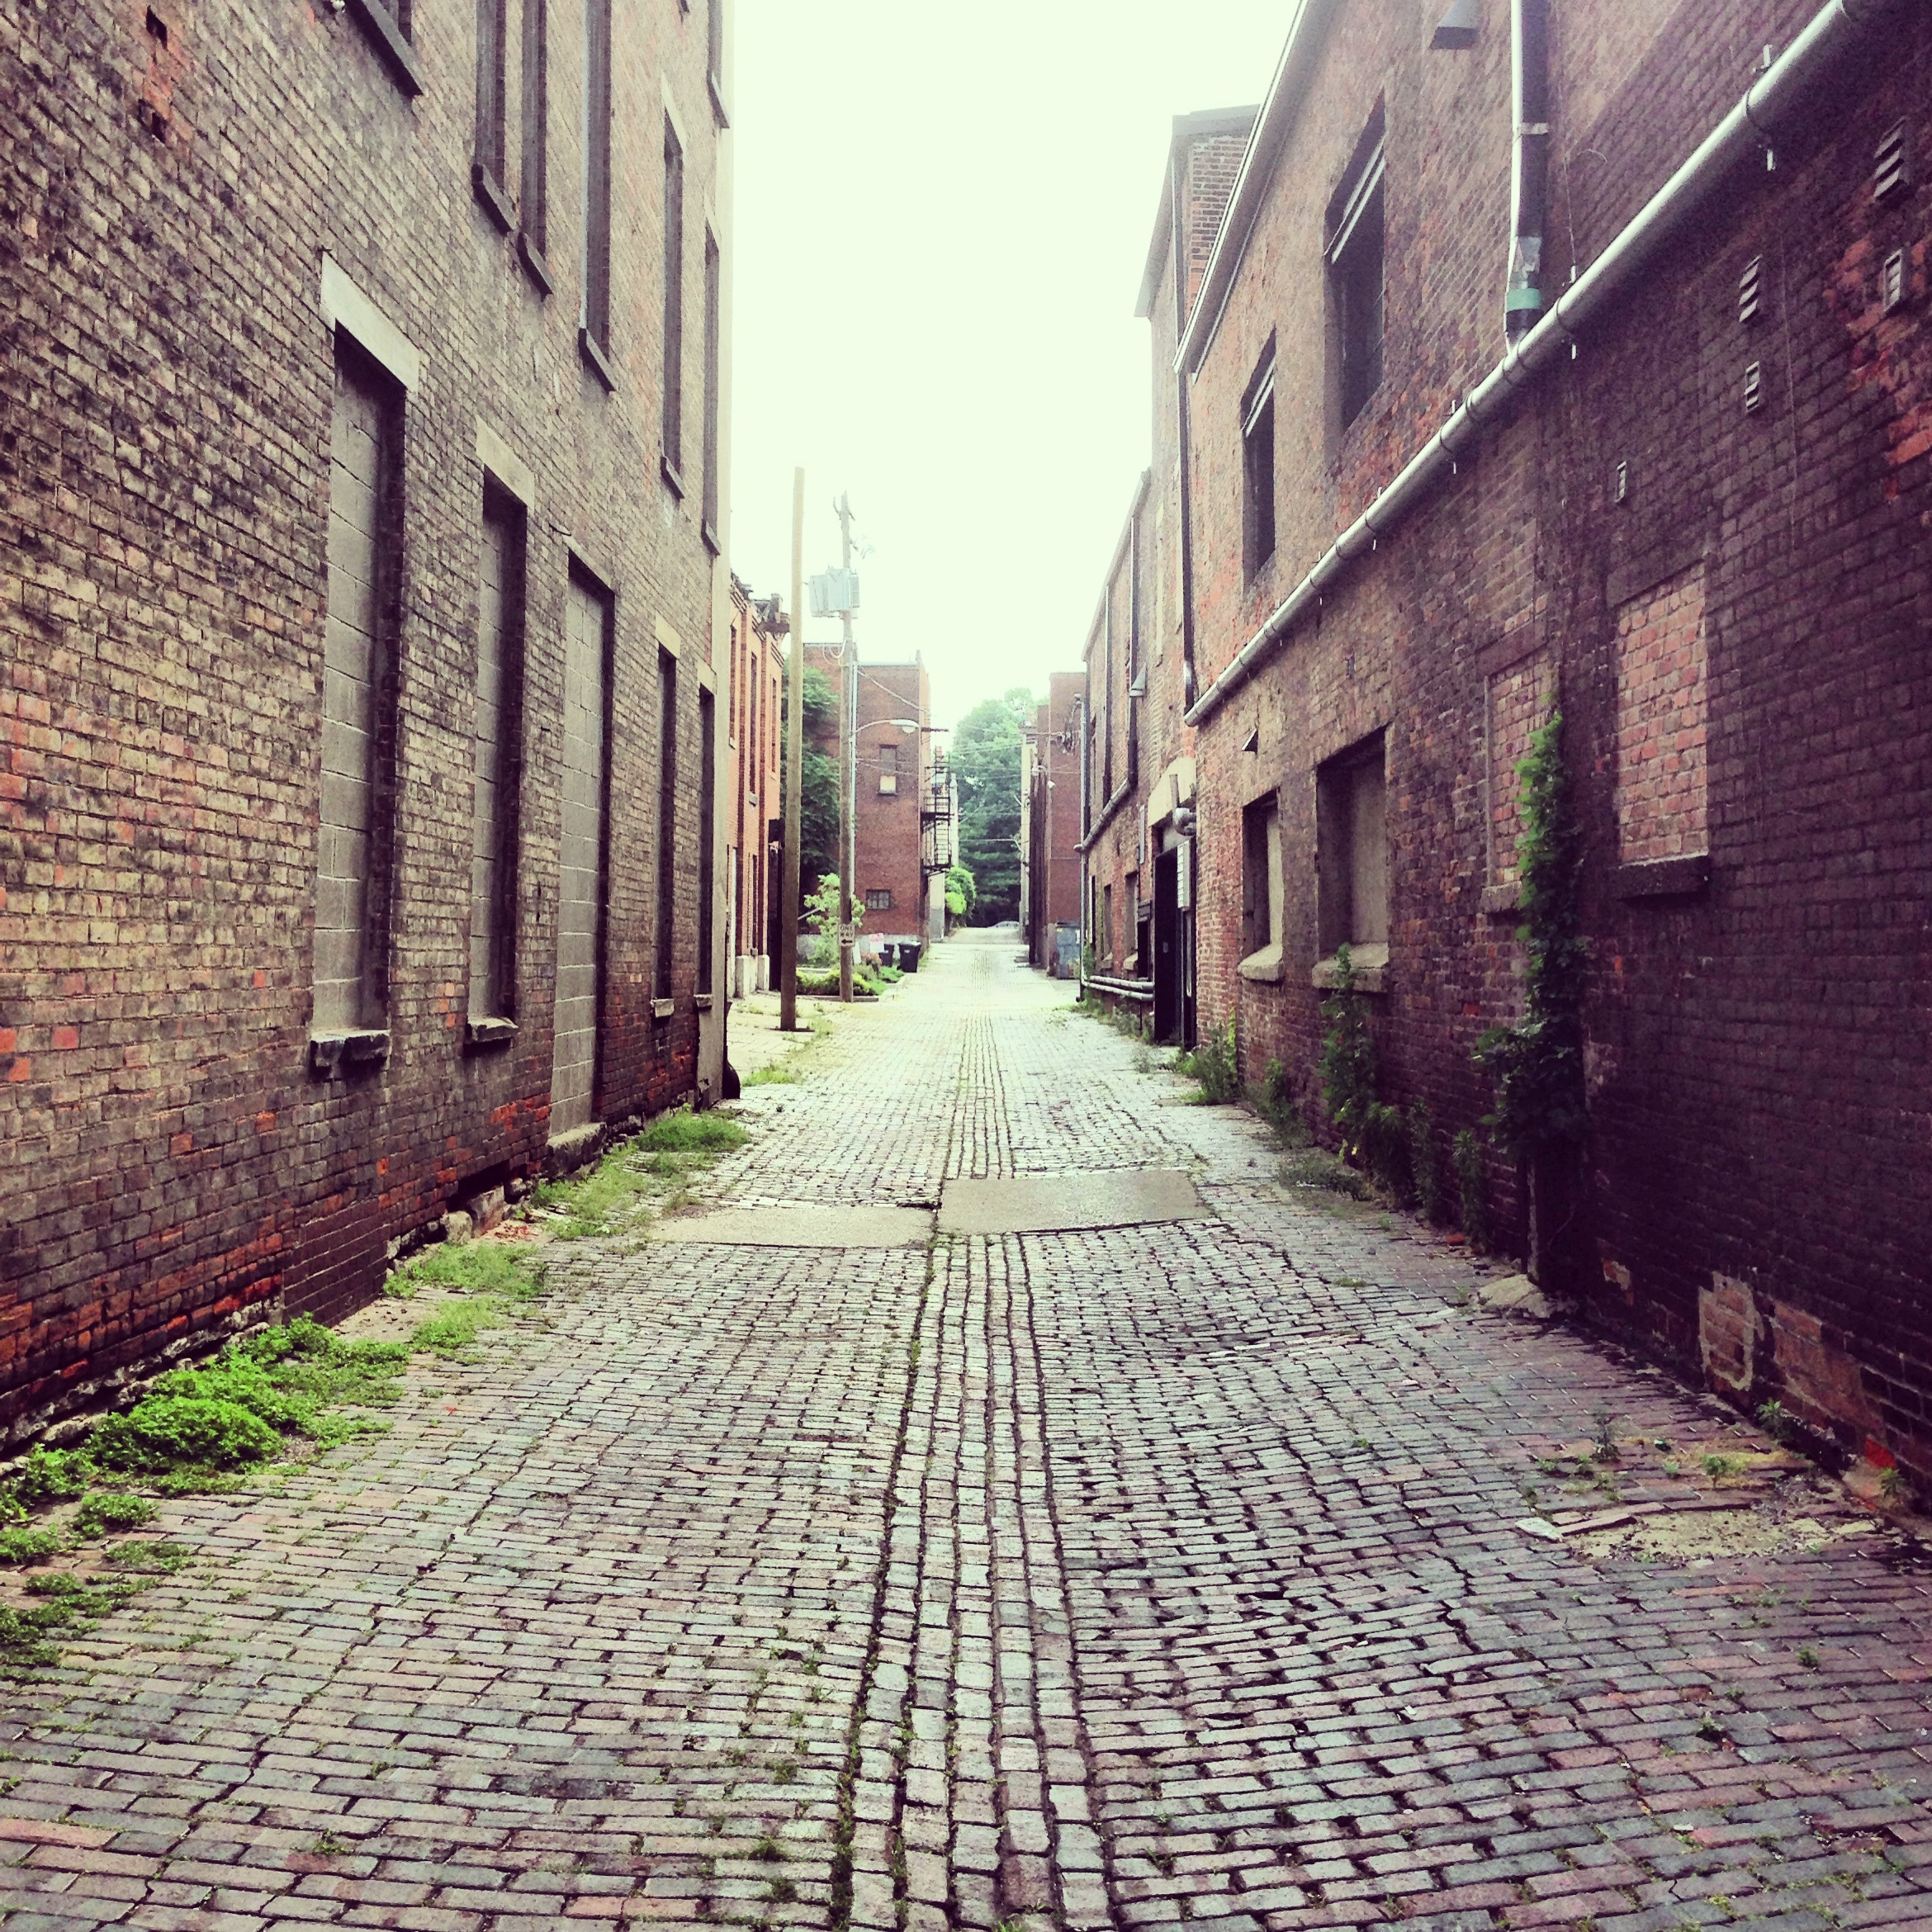 There are neat cobblestone alleys everywhere.